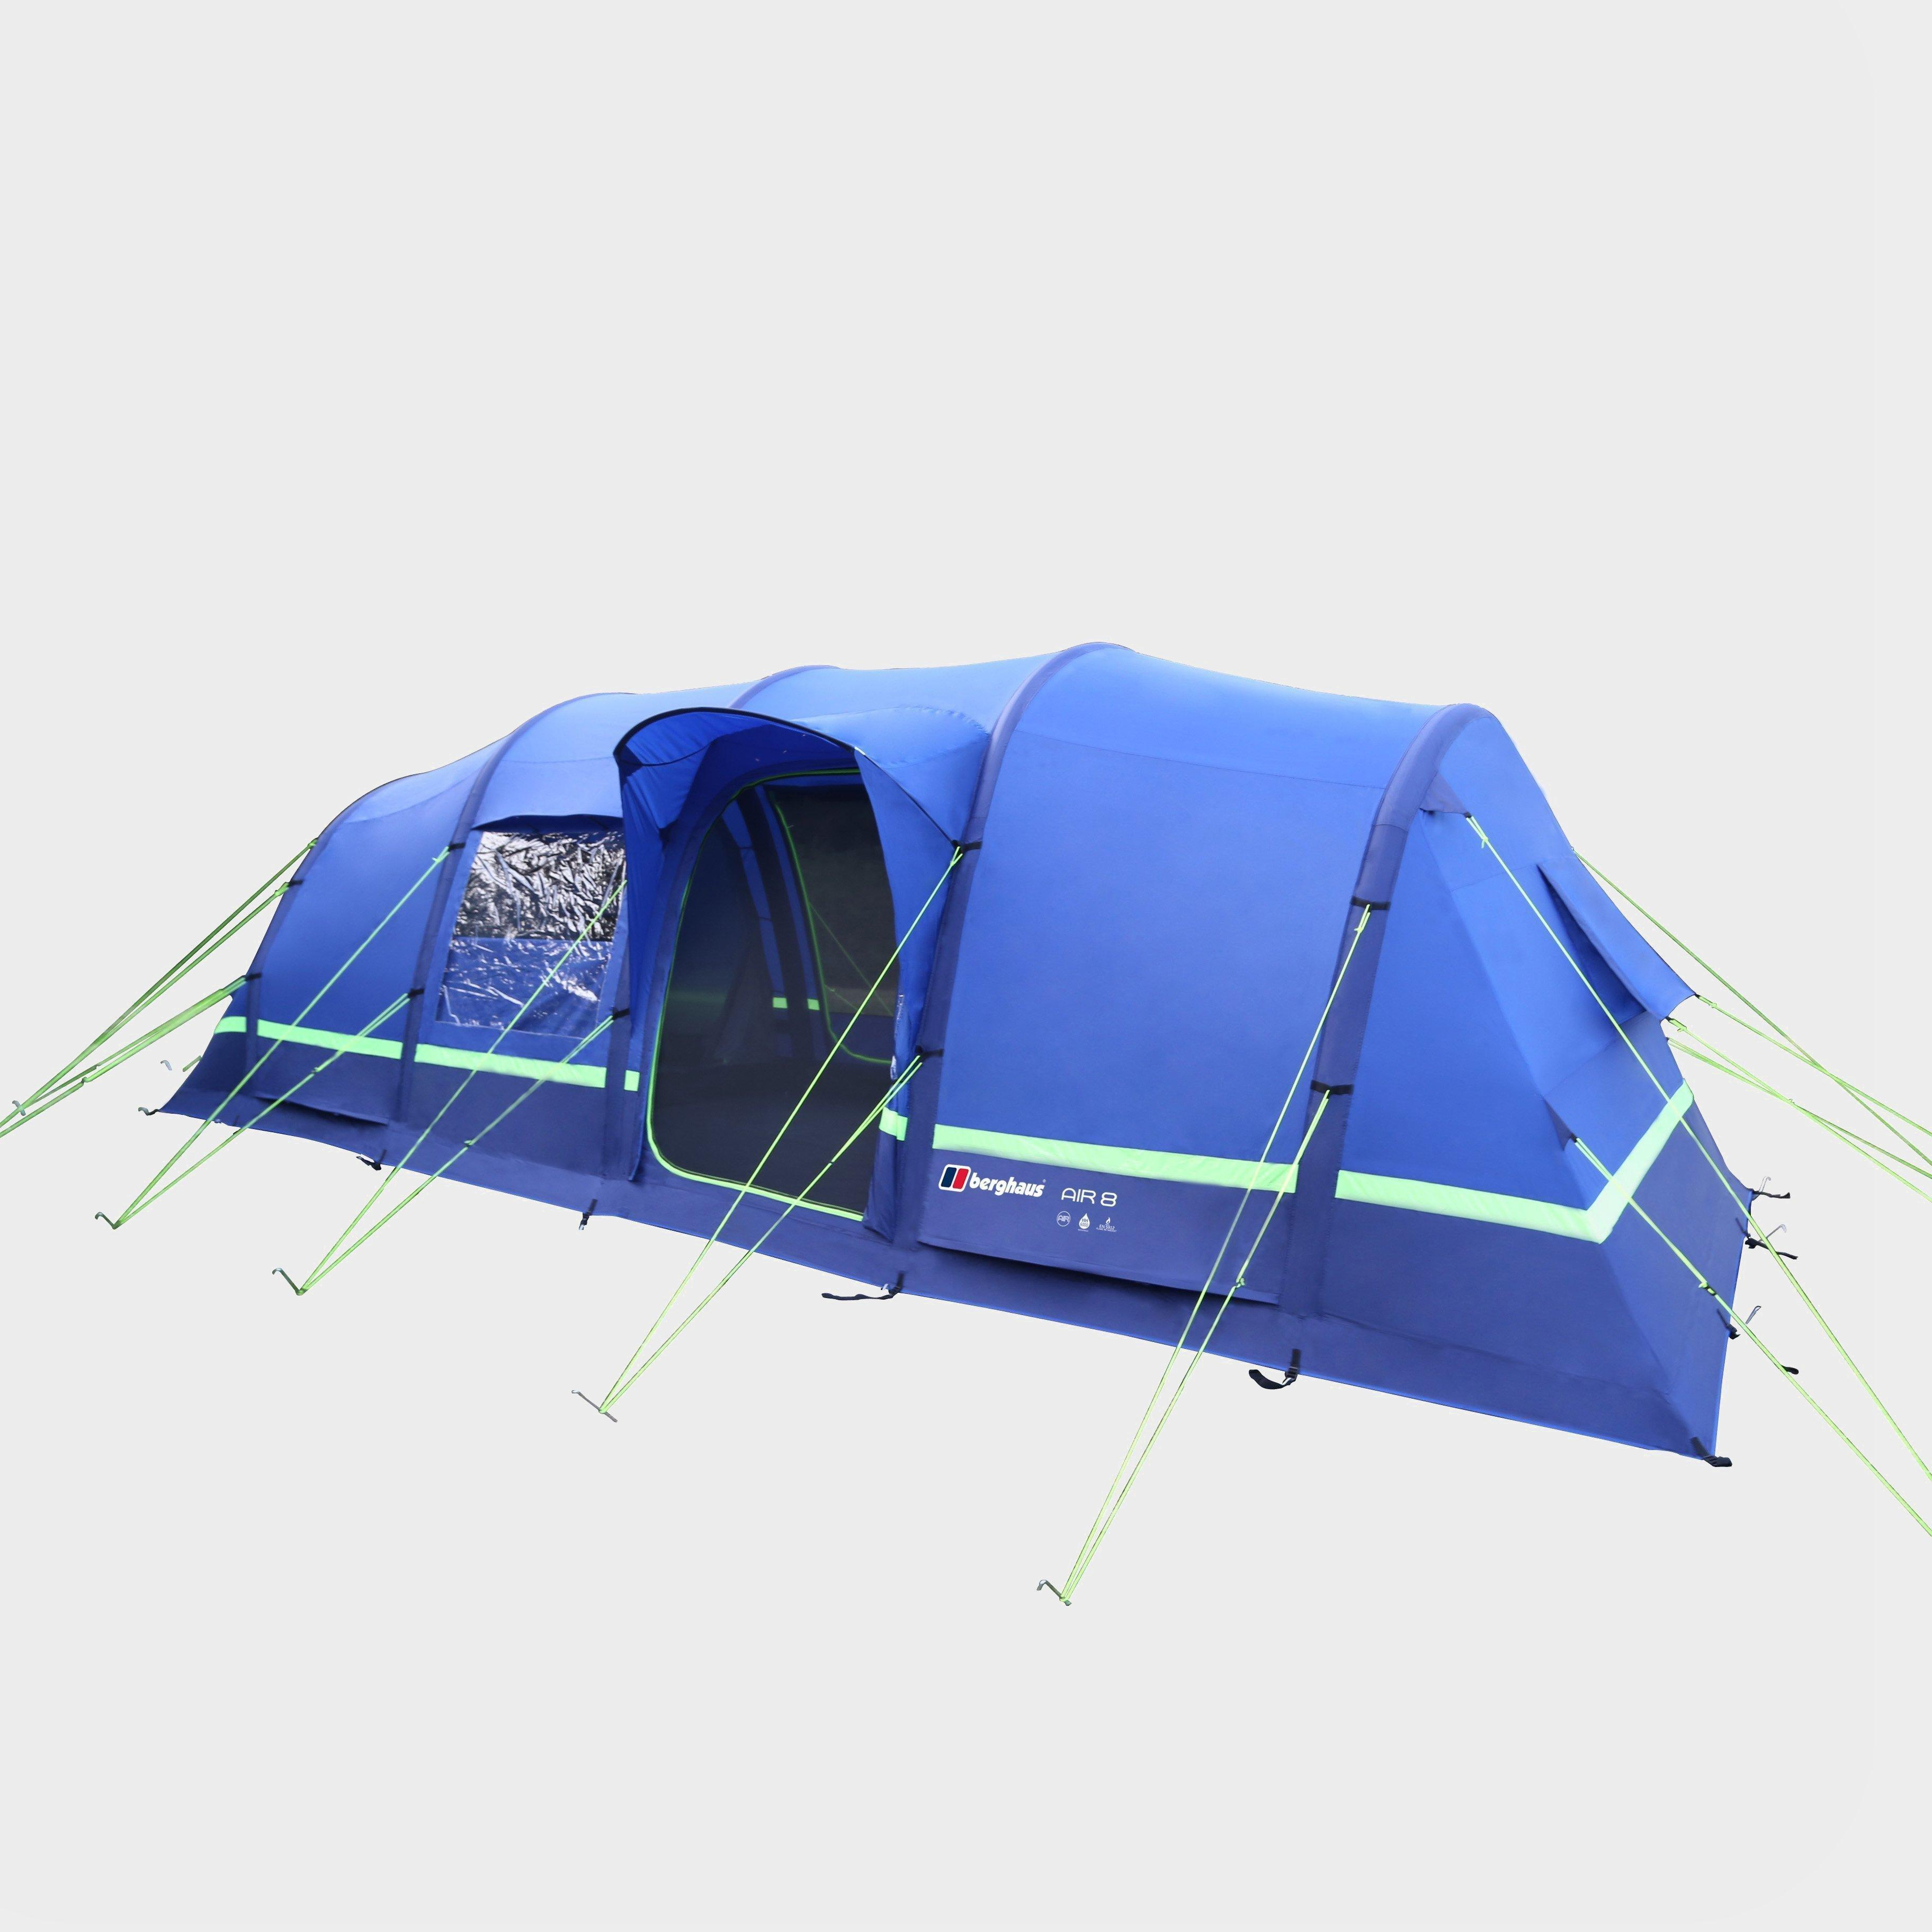 Berghaus Berghaus Air 8 Inflatable Tent - Blue, Blue